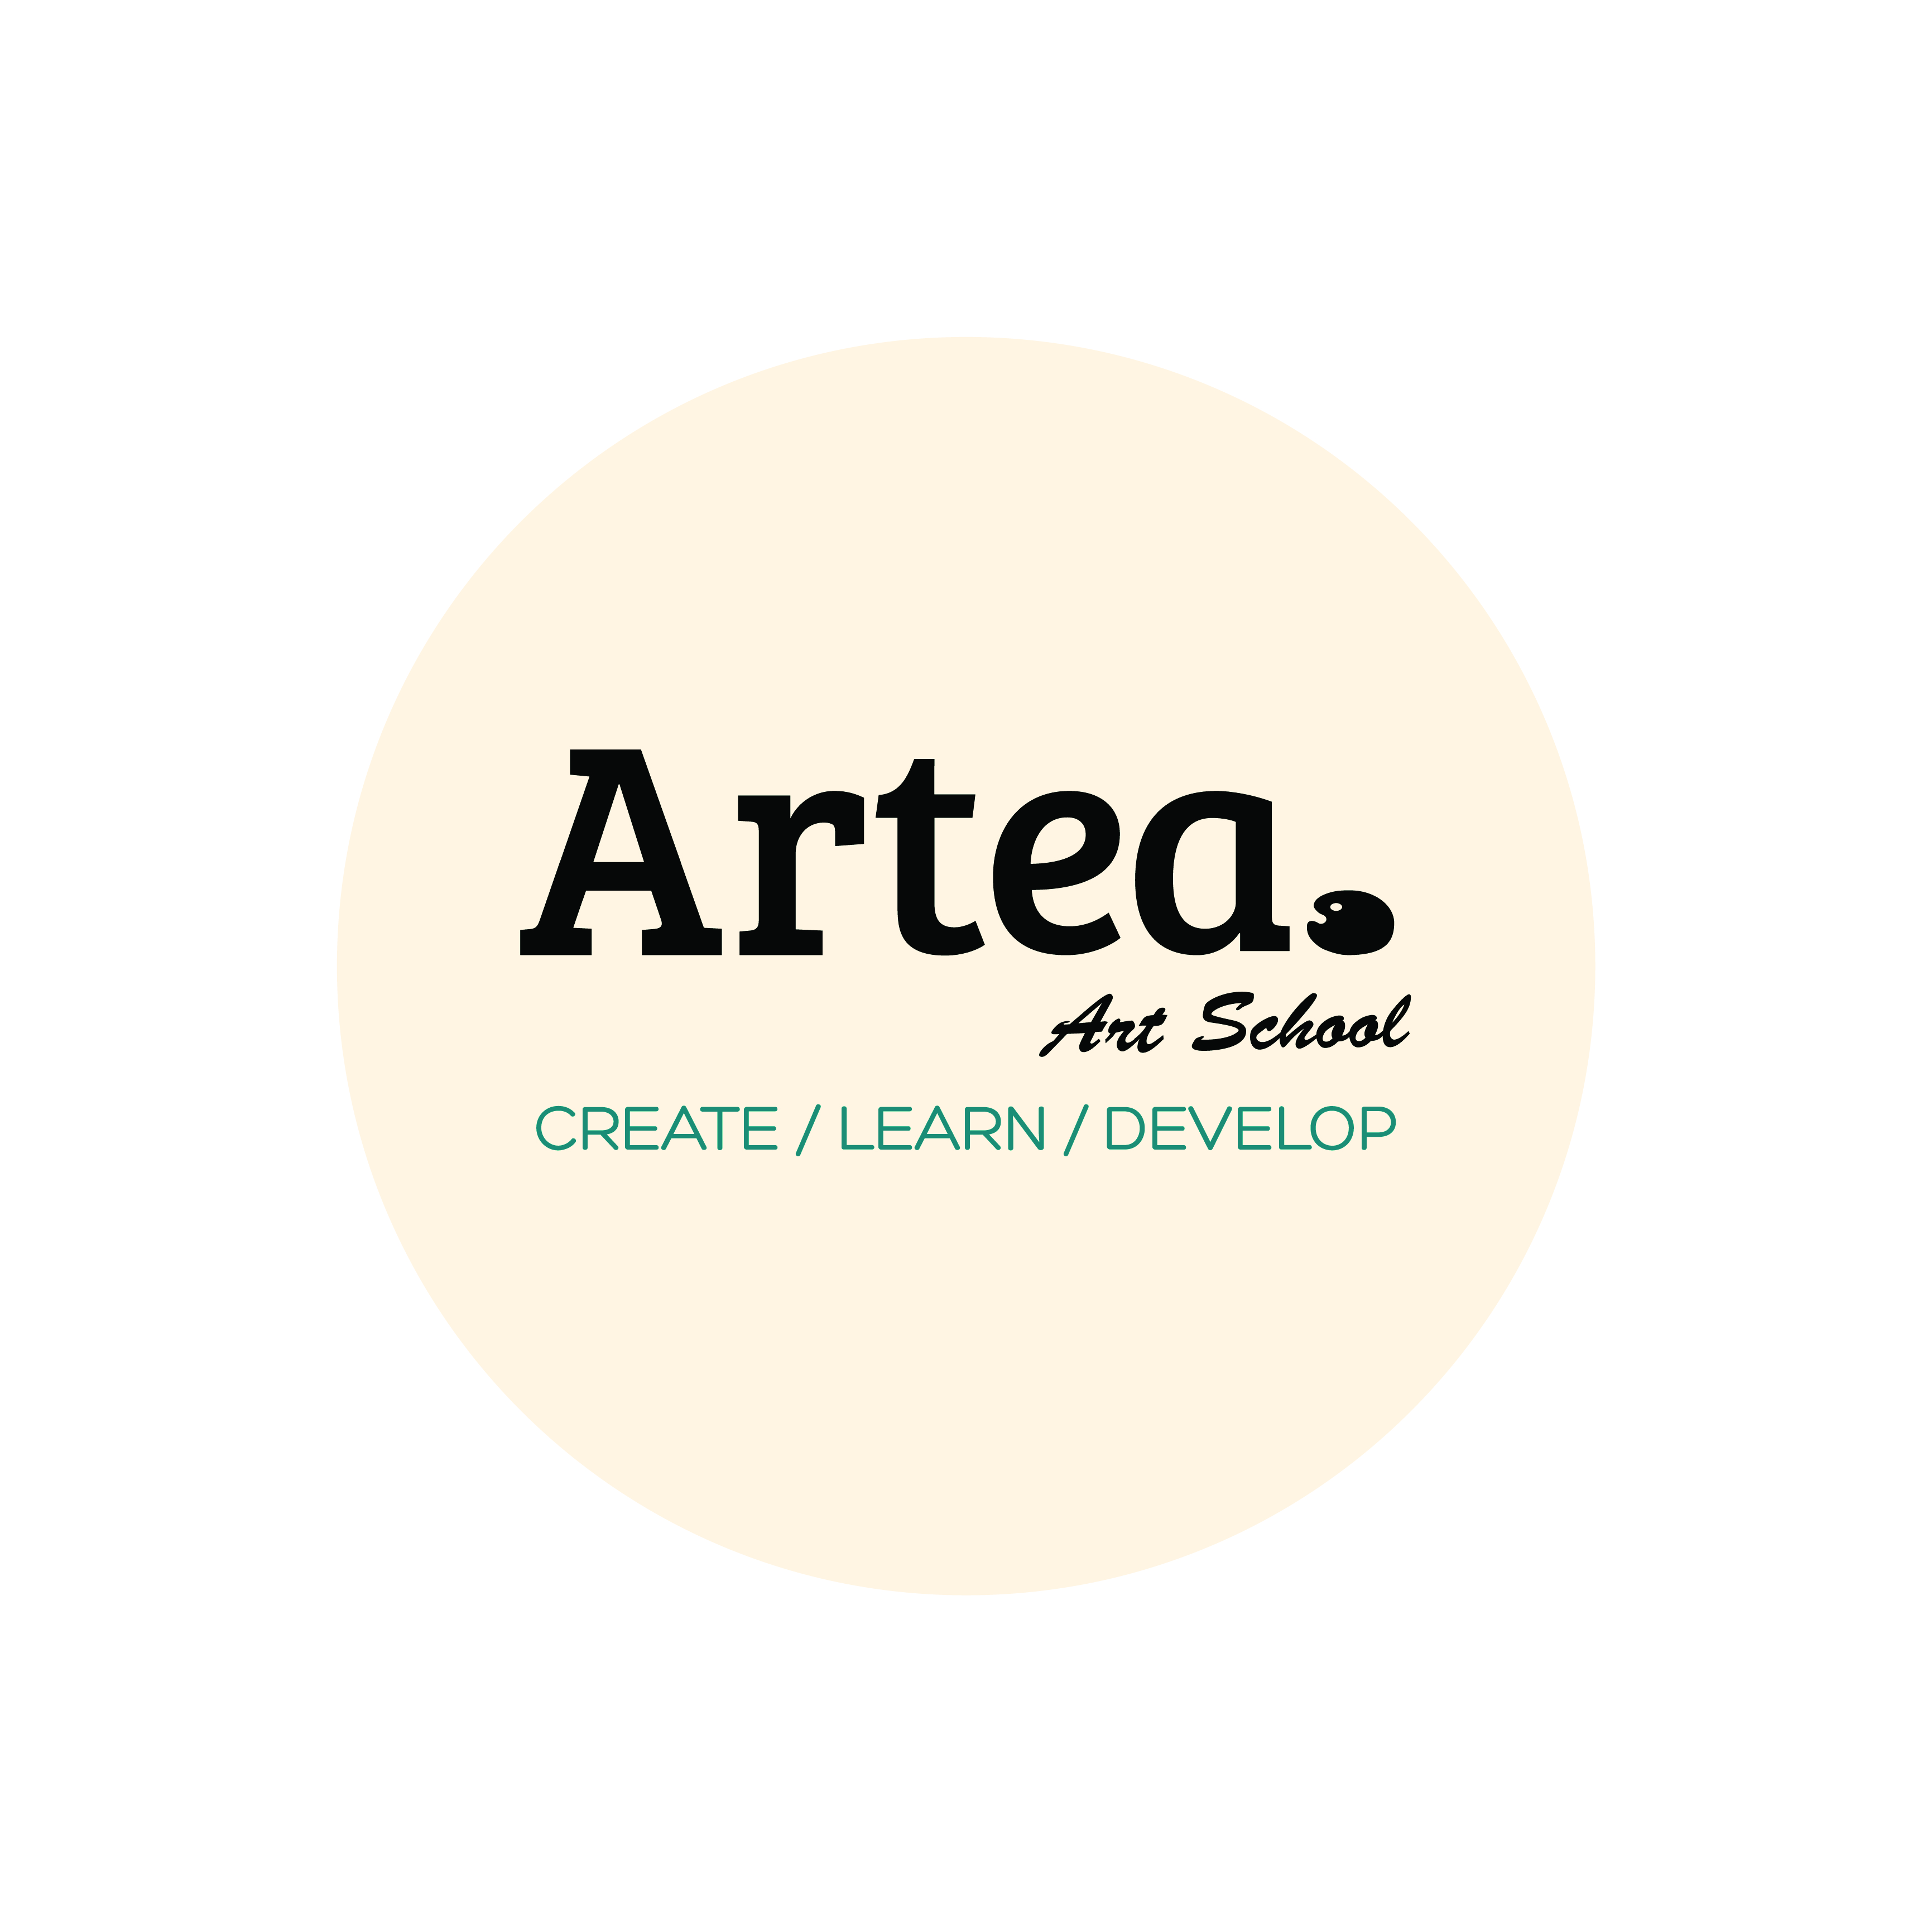 Artea Art School Community and Party Venue